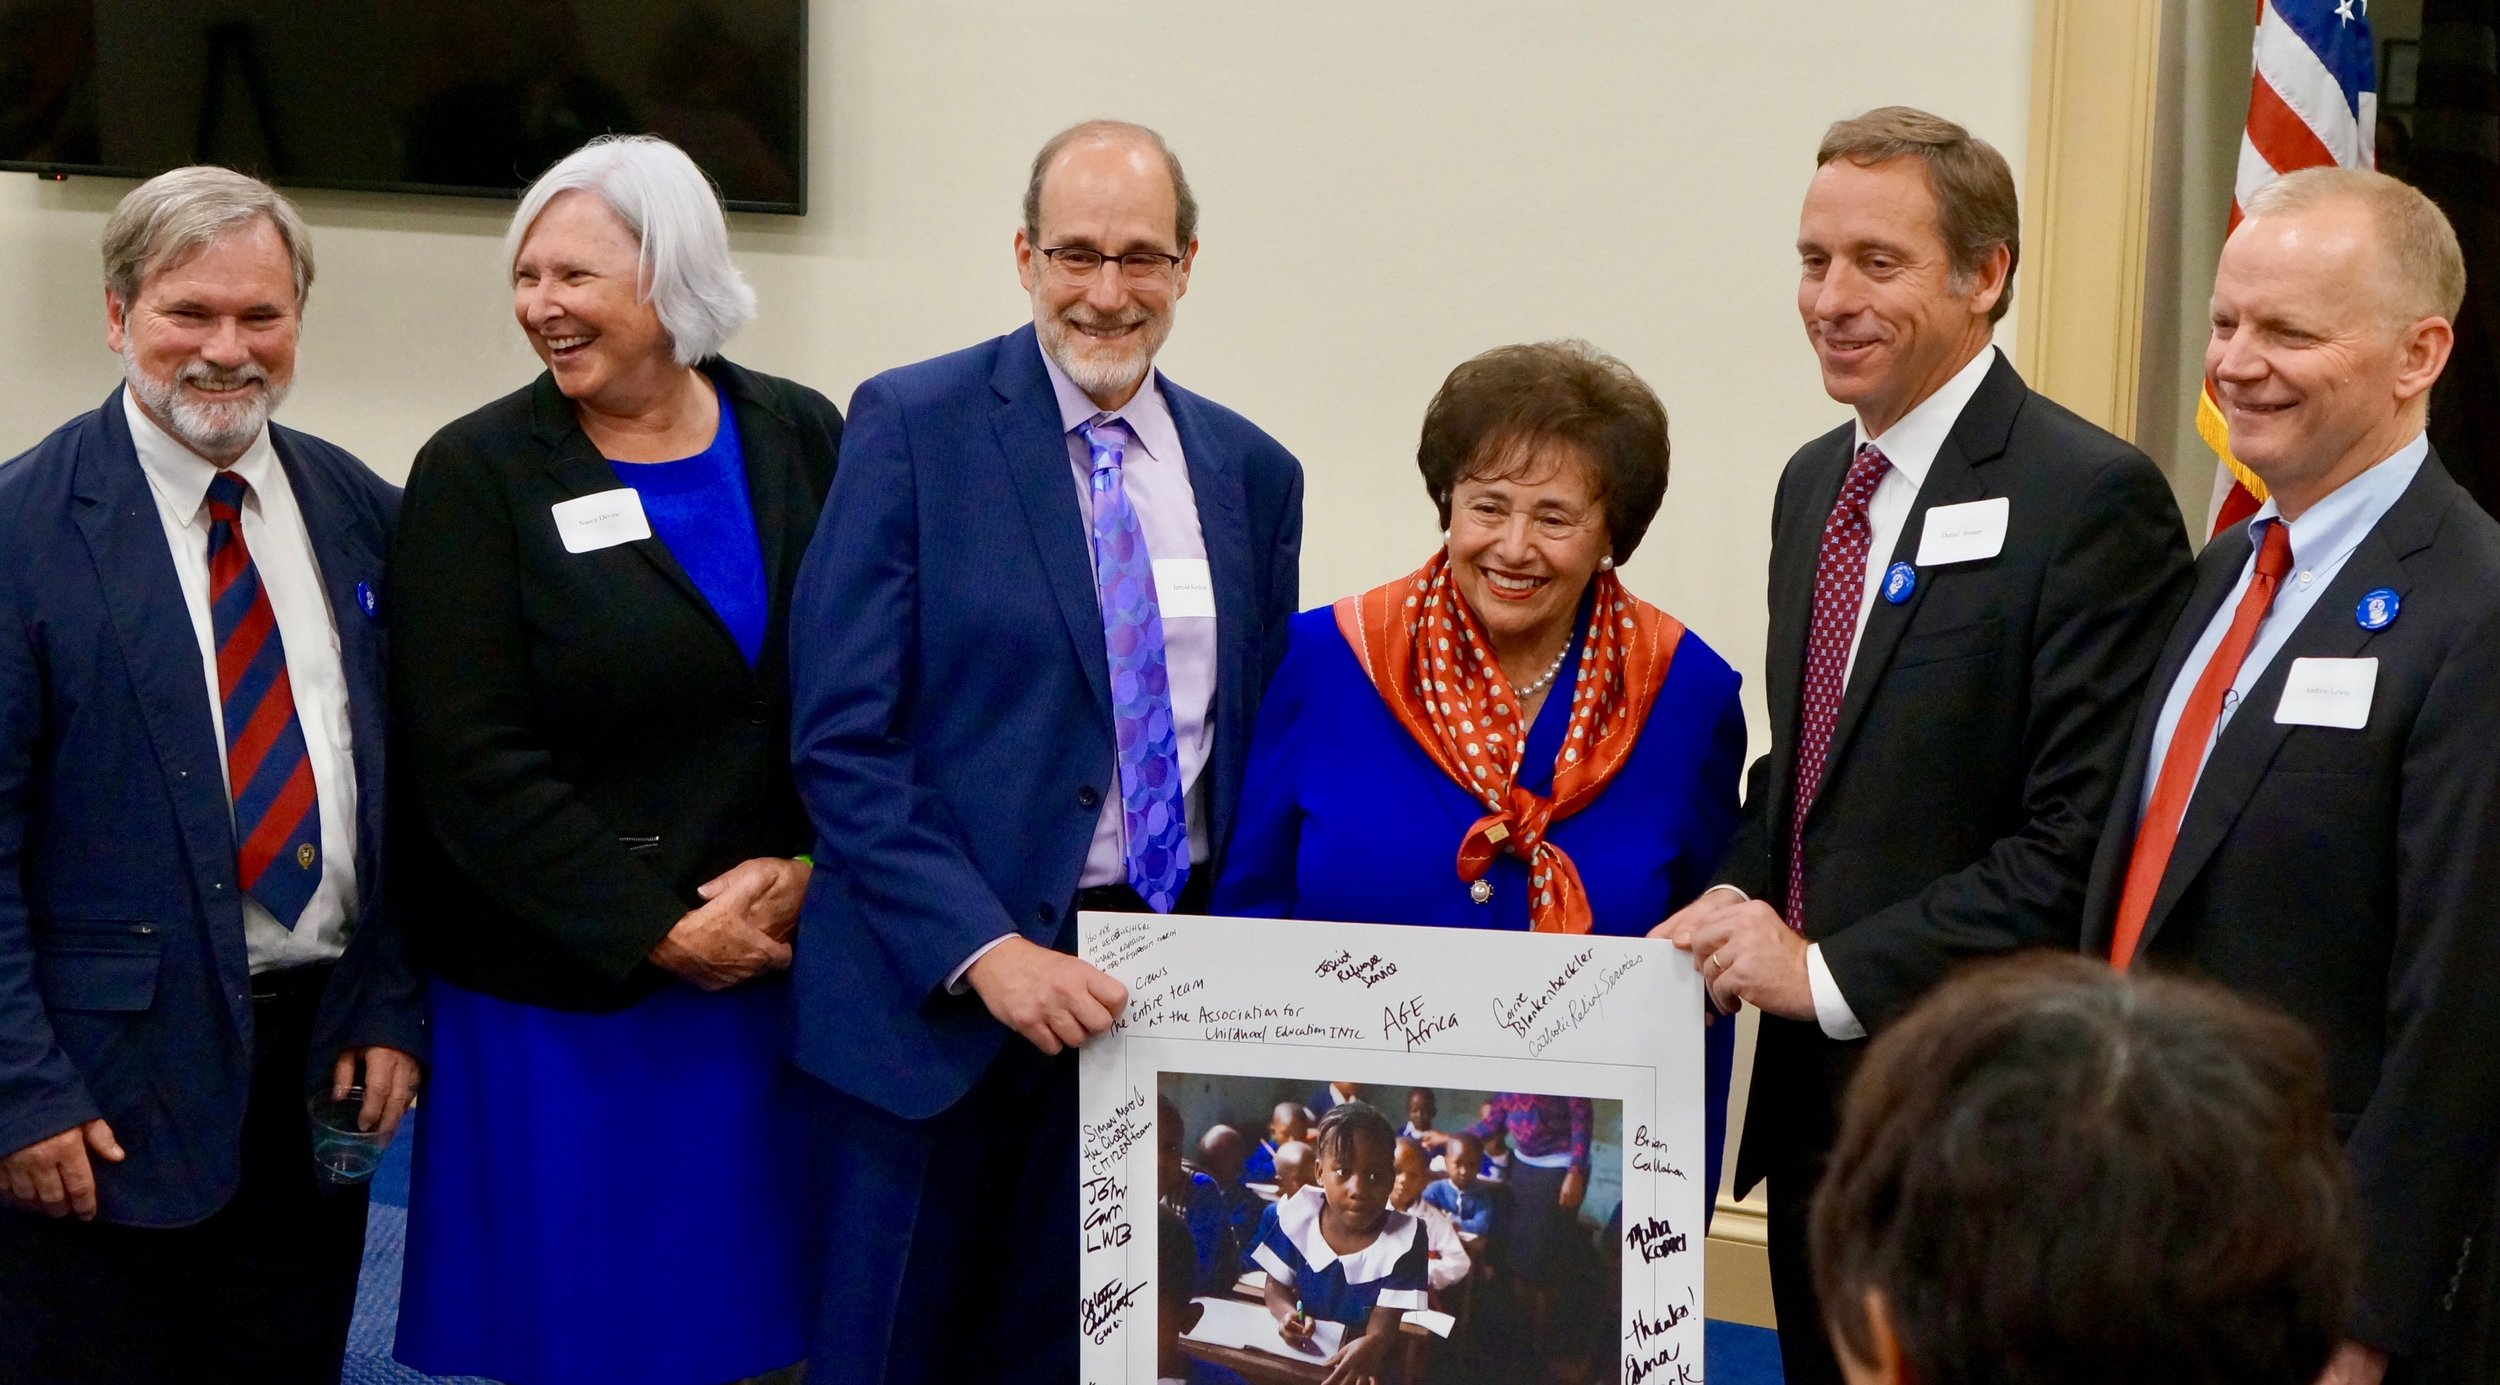 BEC Board Members thanking Nita Lowey